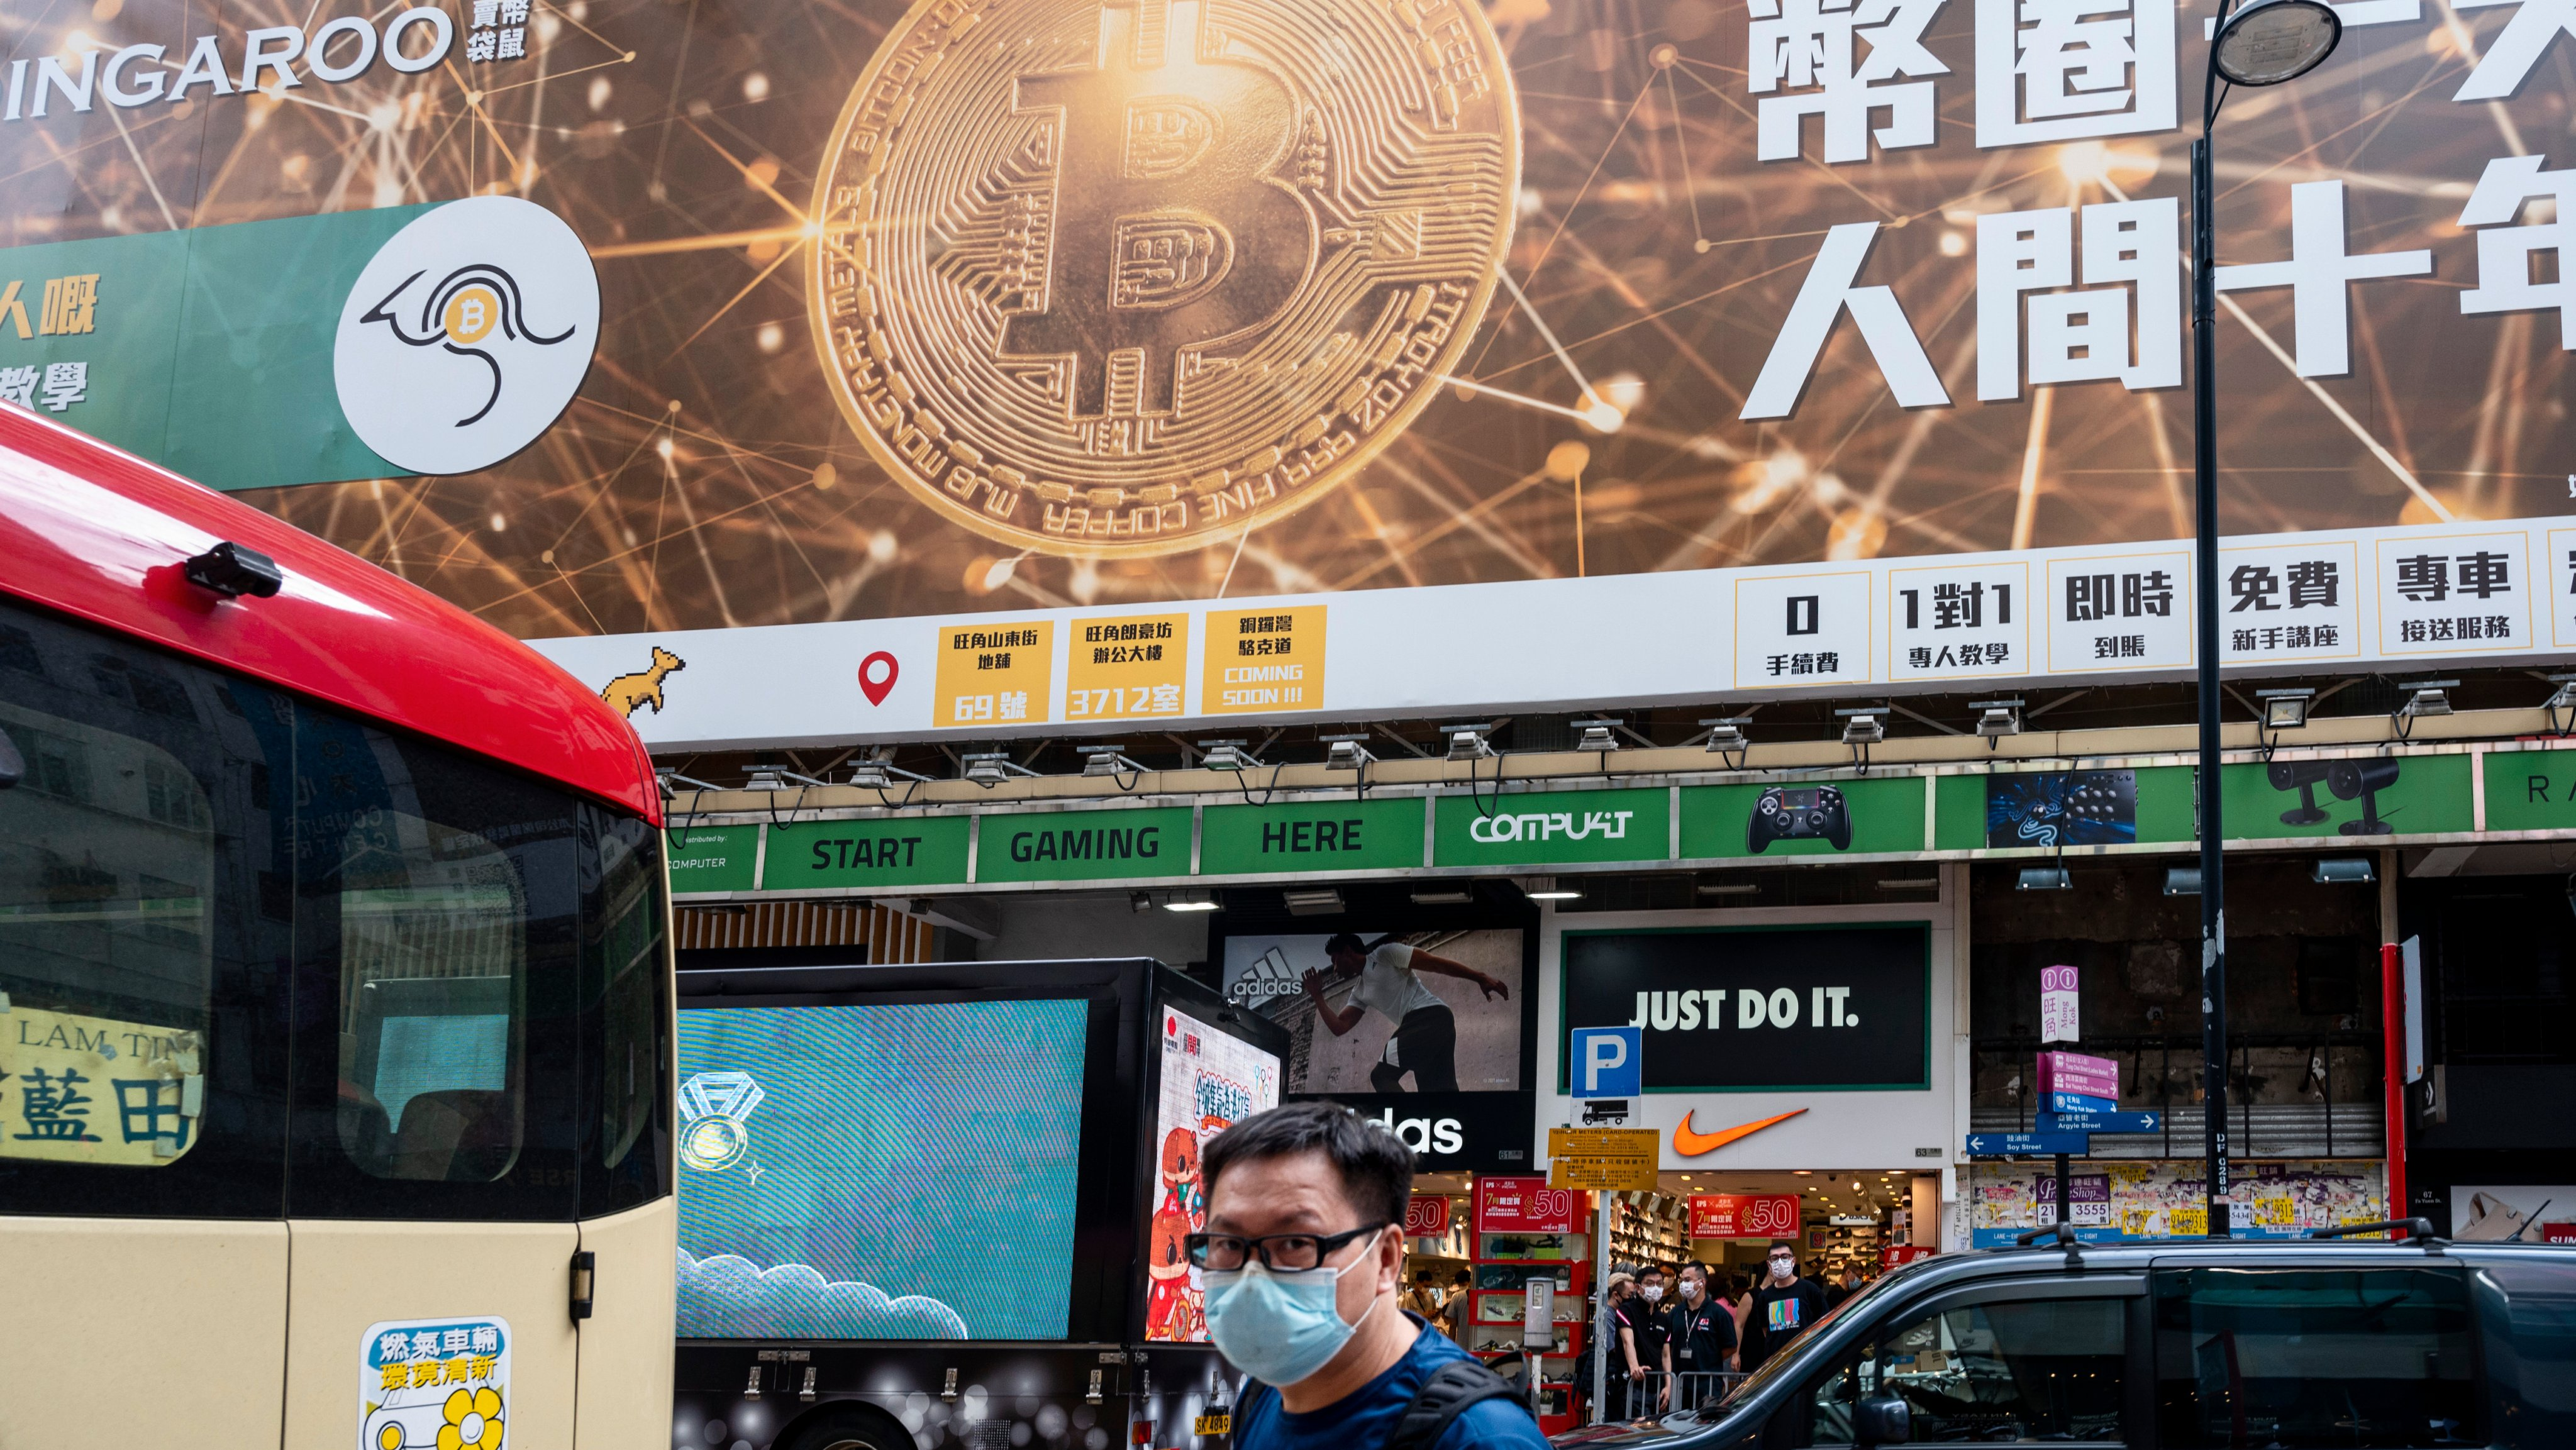 Cryptocurrency electronic cash Bitcoin banner advertisement